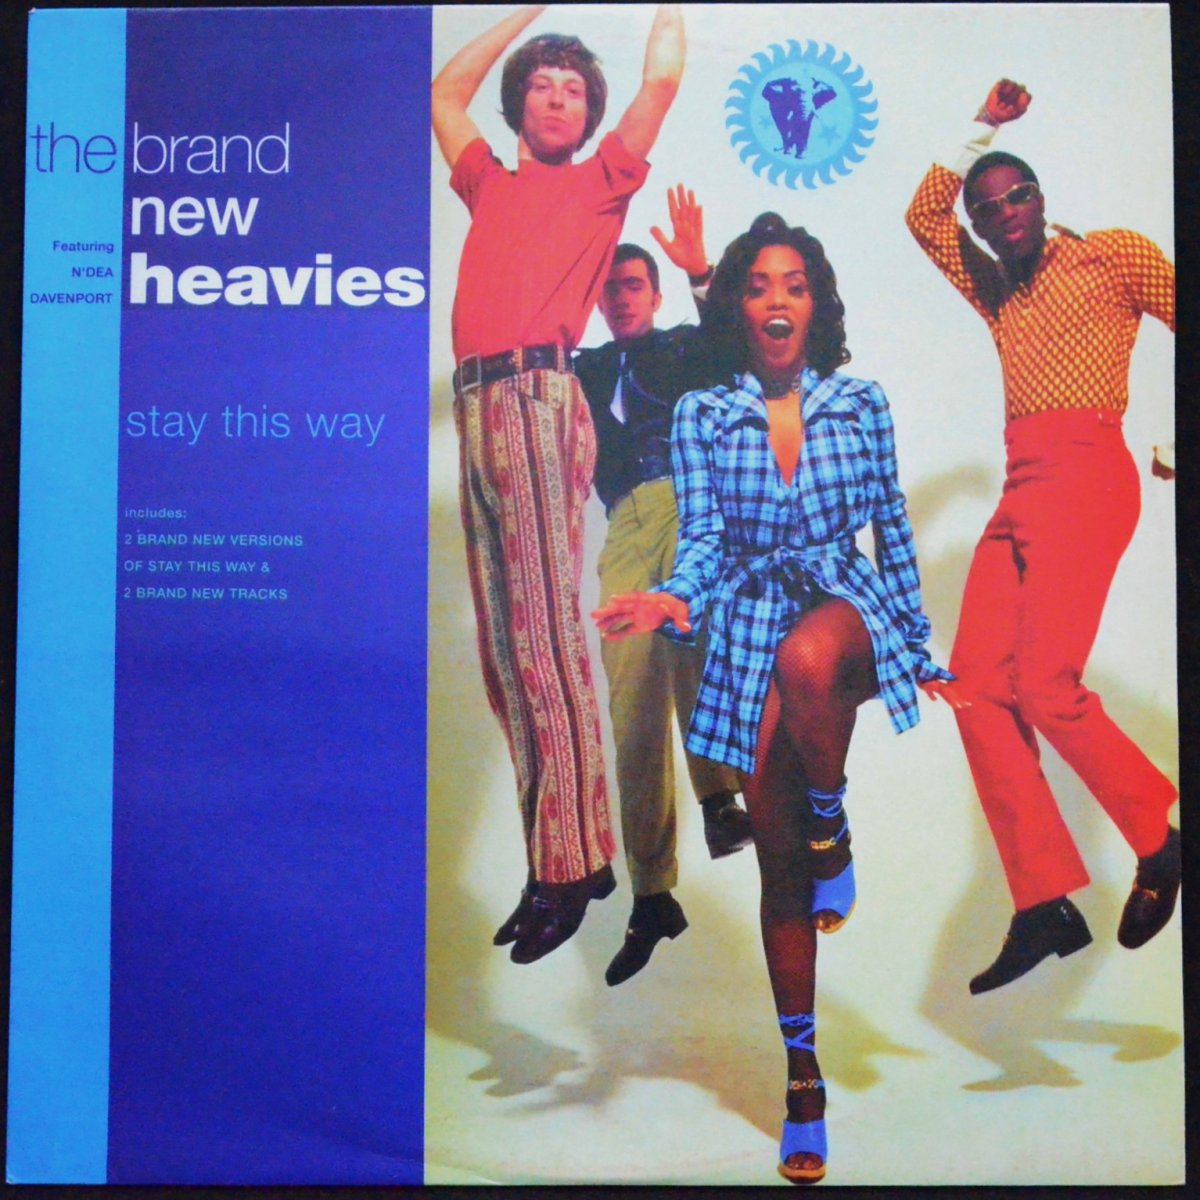 THE BRAND NEW HEAVIES FEATURING N'DEA DAVENPORT ‎/ STAY THIS WAY (12